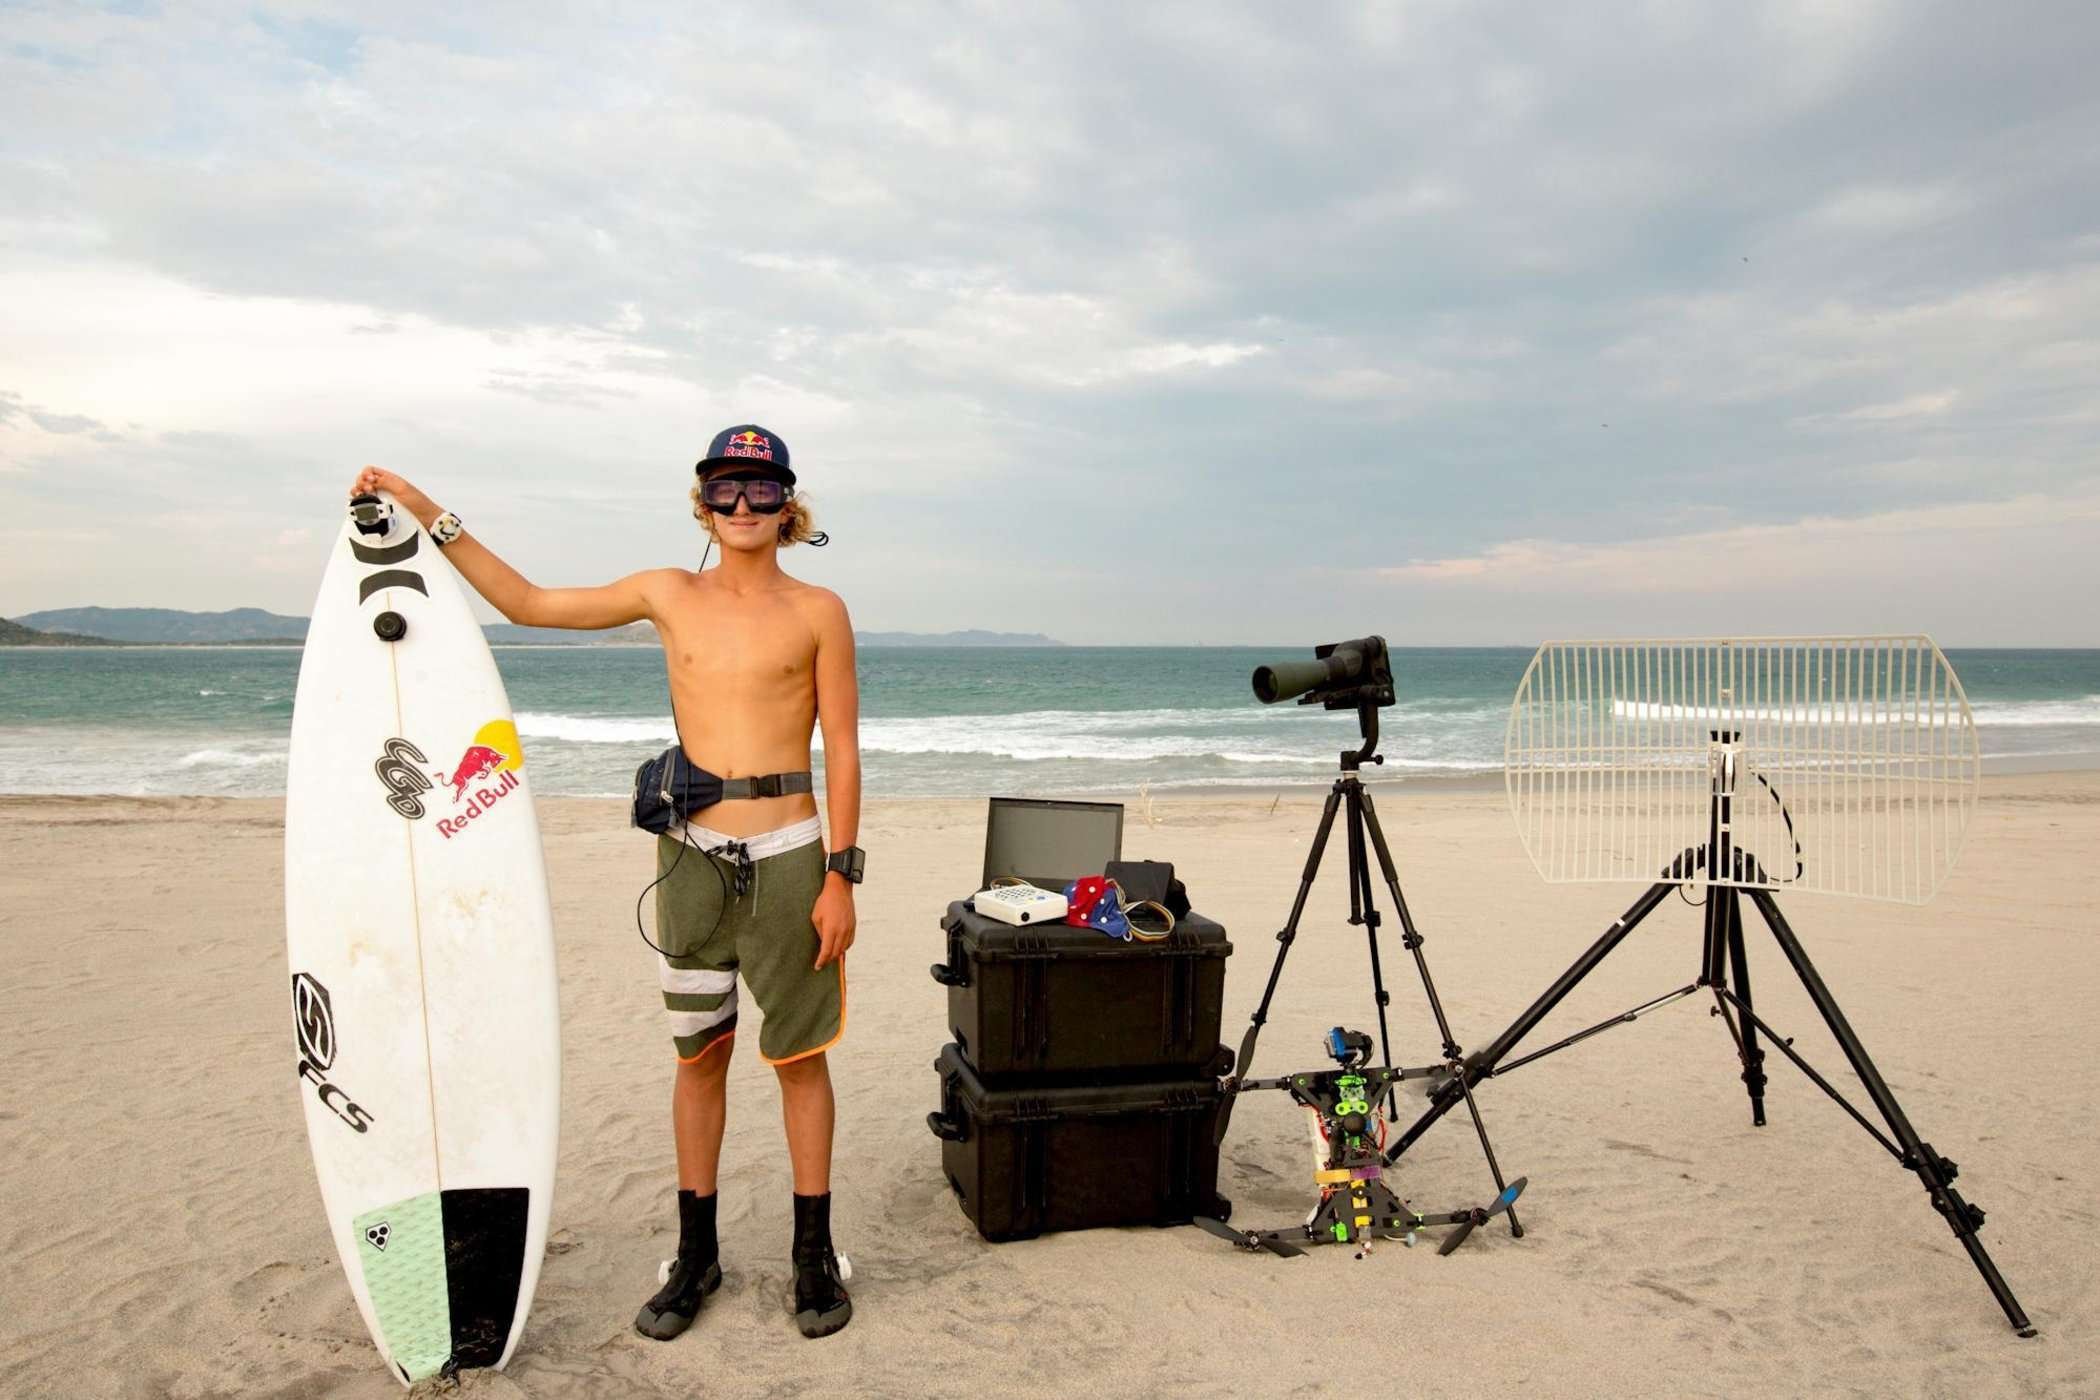 PPS Technology and Red Bull team up to improve athlete surfing performance in Mexico.